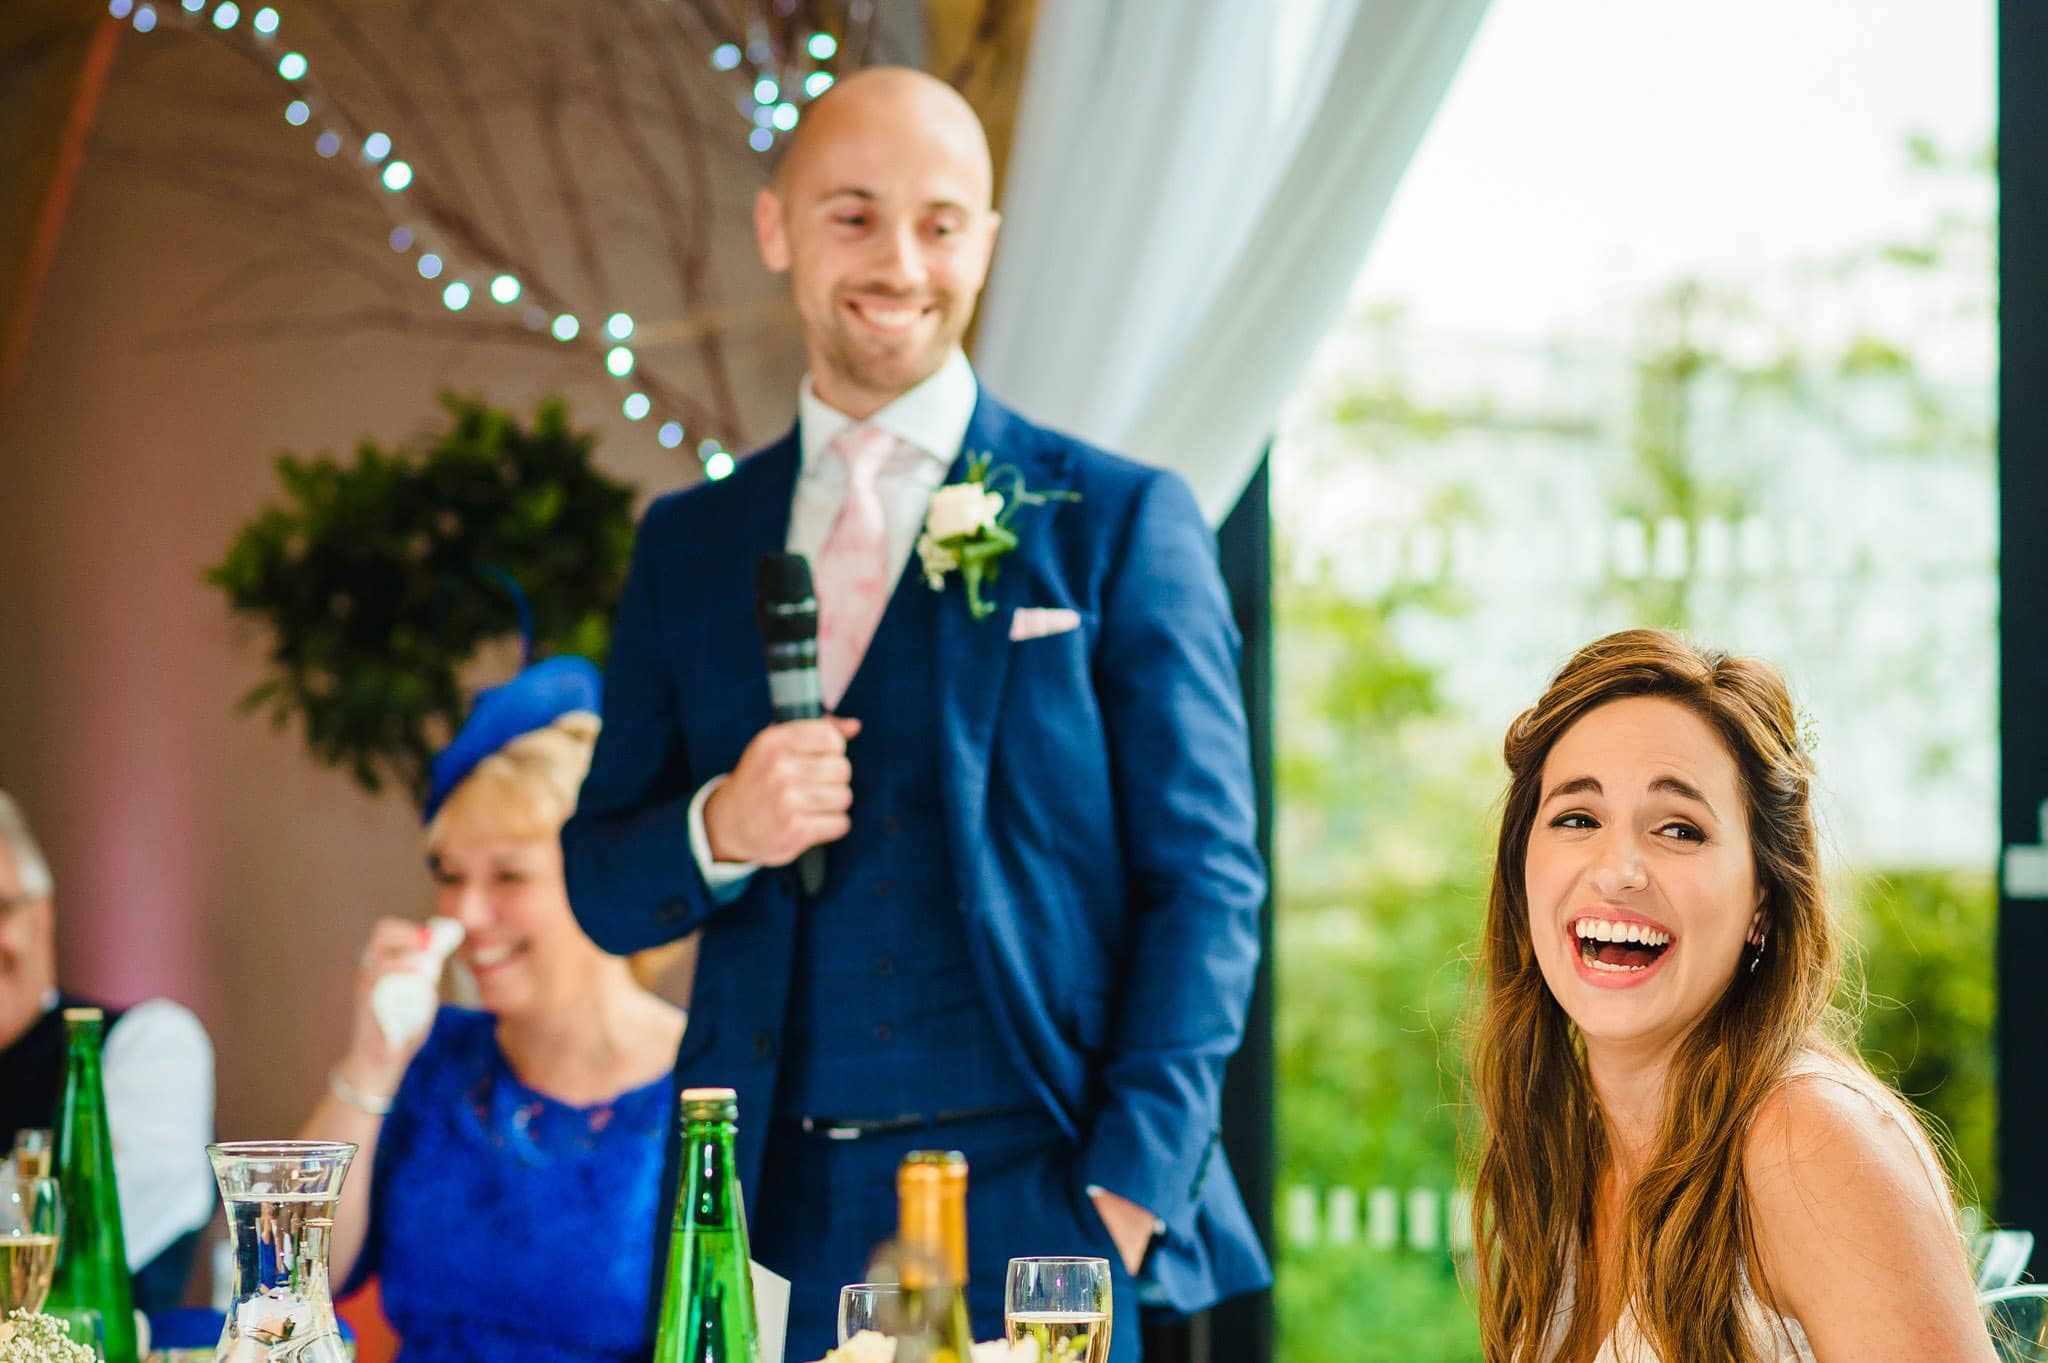 Wedding at Redhouse Barn in Stoke Prior, Worcestershire 146